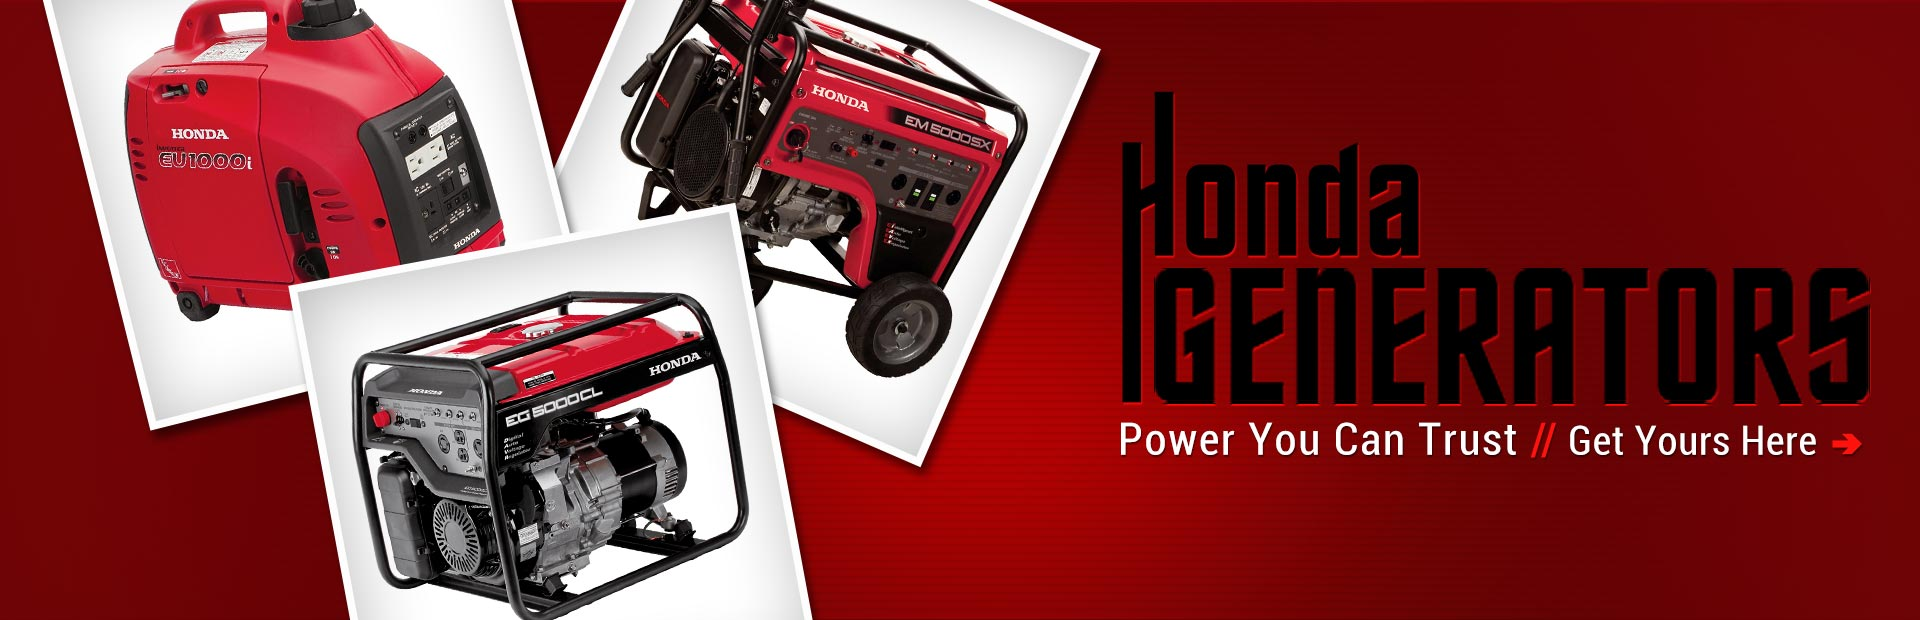 Click here to view Honda generators.